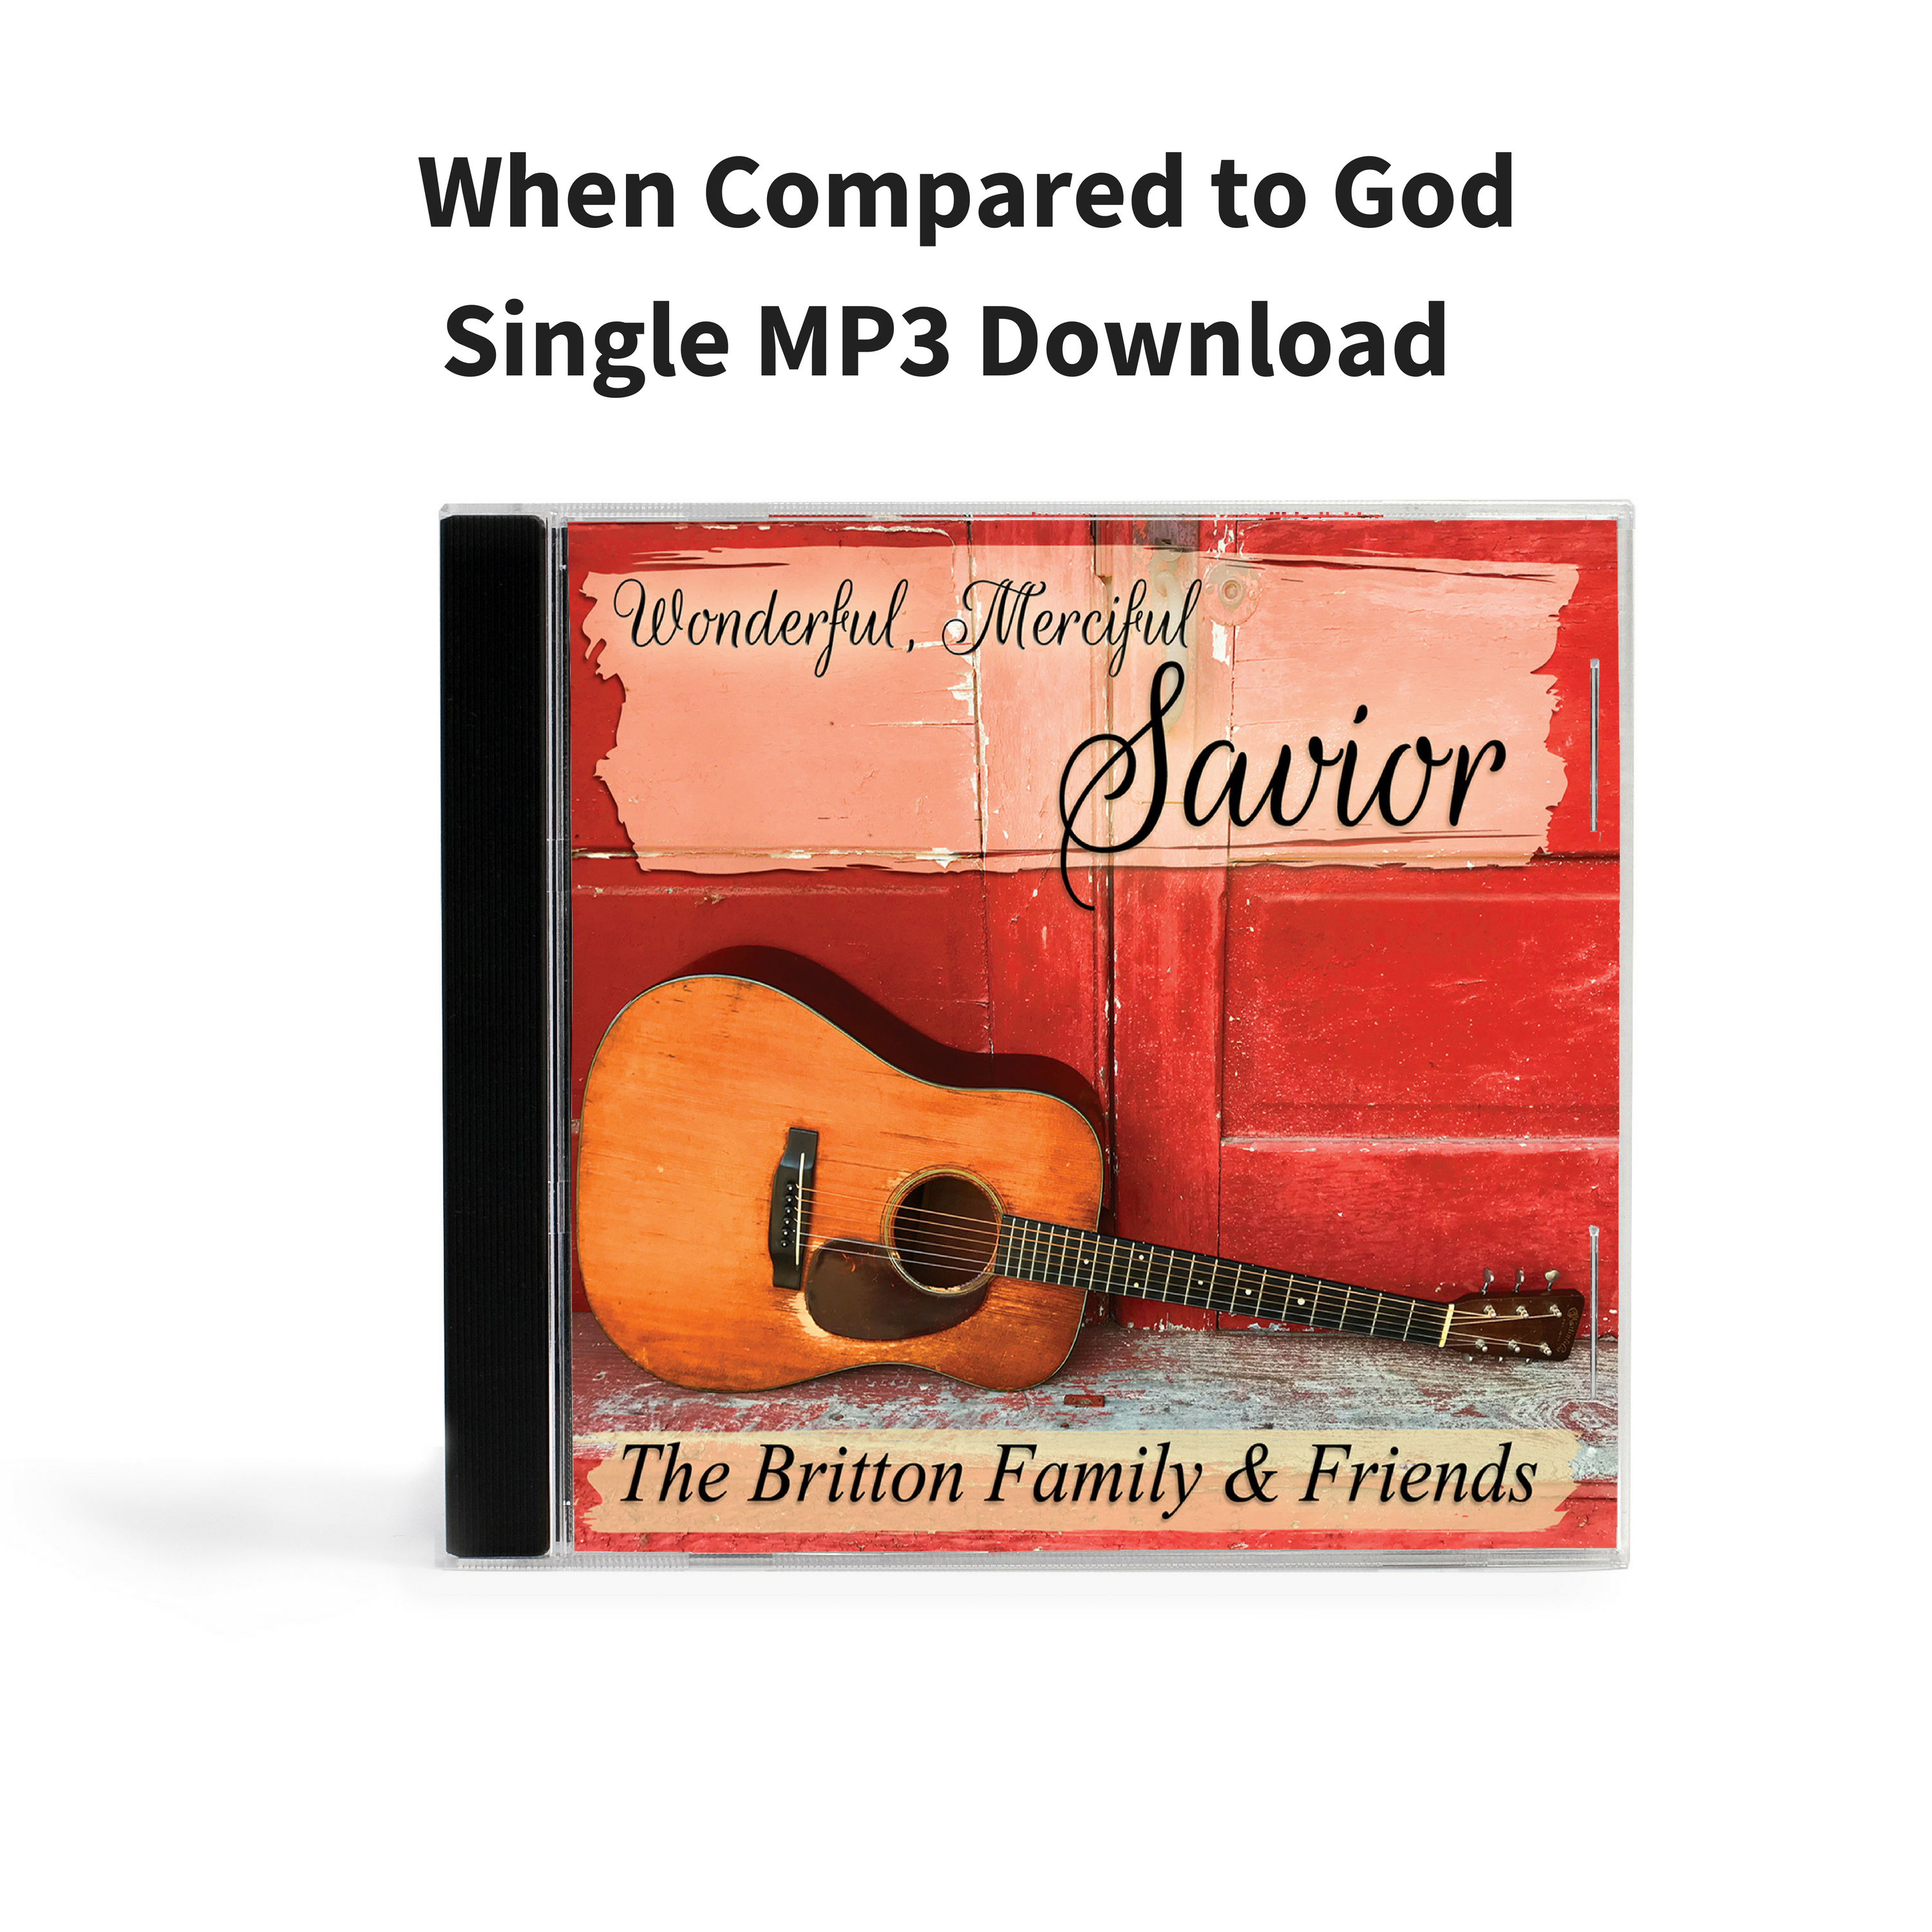 When Compared to God - Single MP3 Download 000009